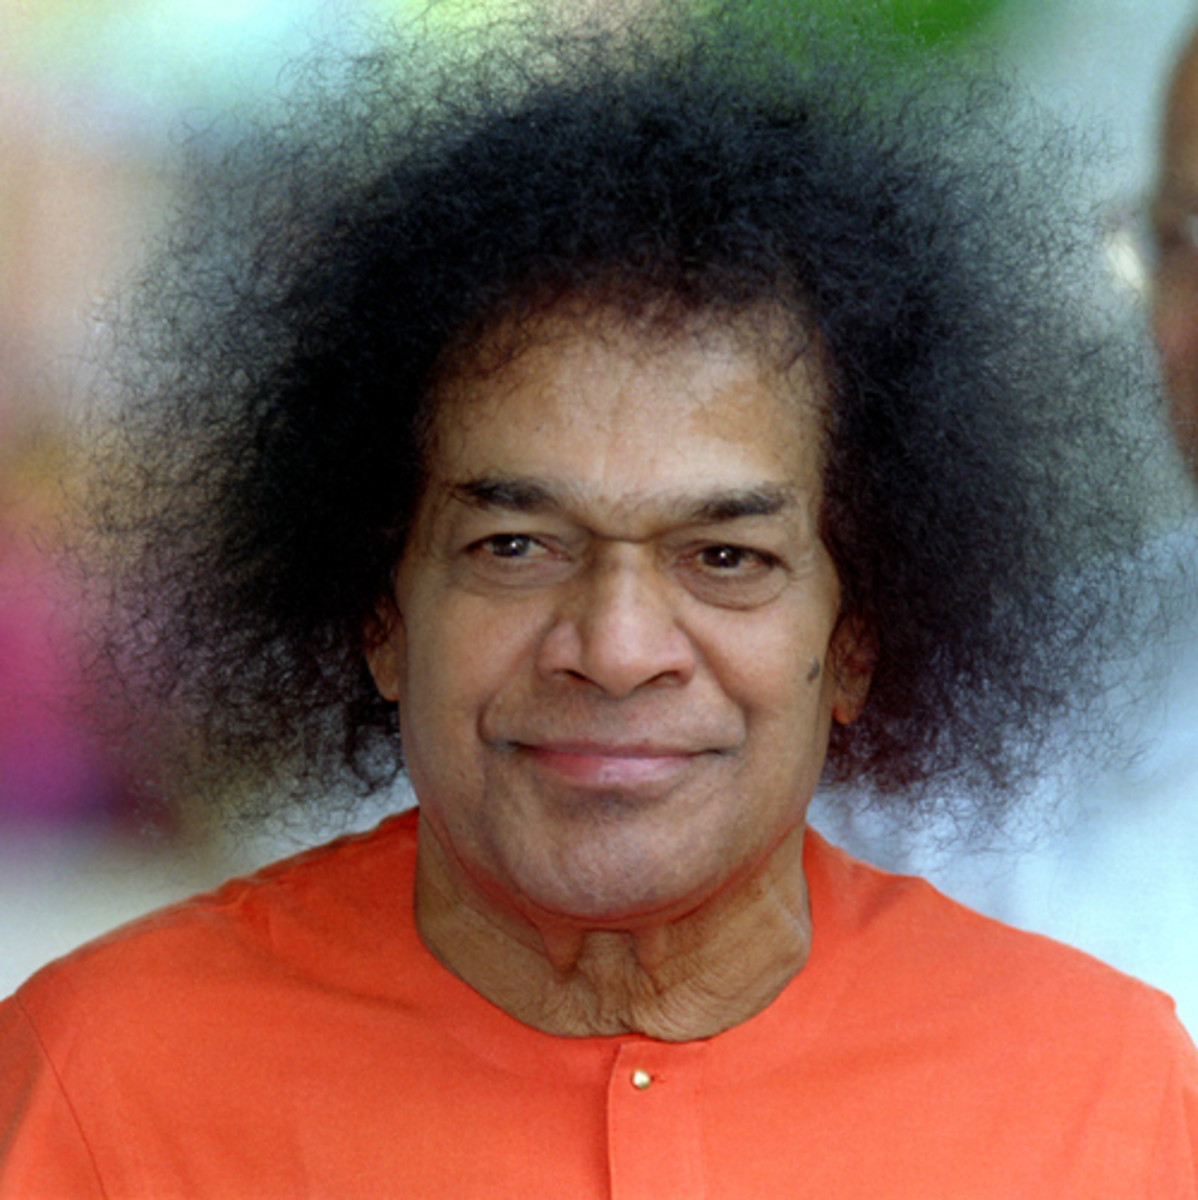 No word of God is ever in jest - an experience with Sri Sathya Sai